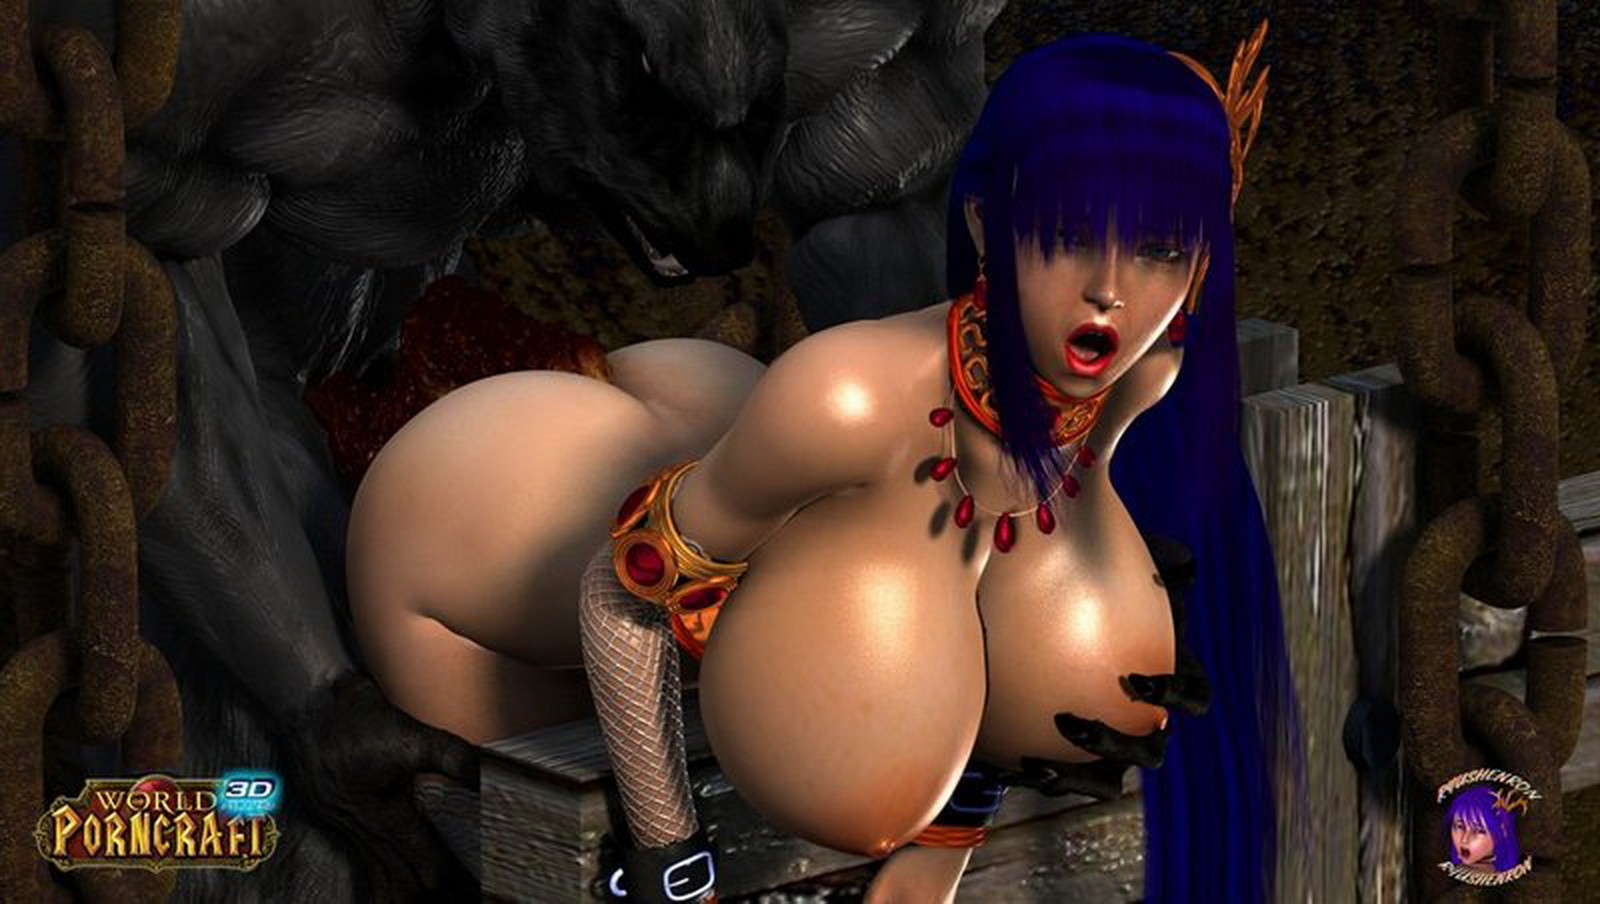 3d porno fantasy world hentay photos